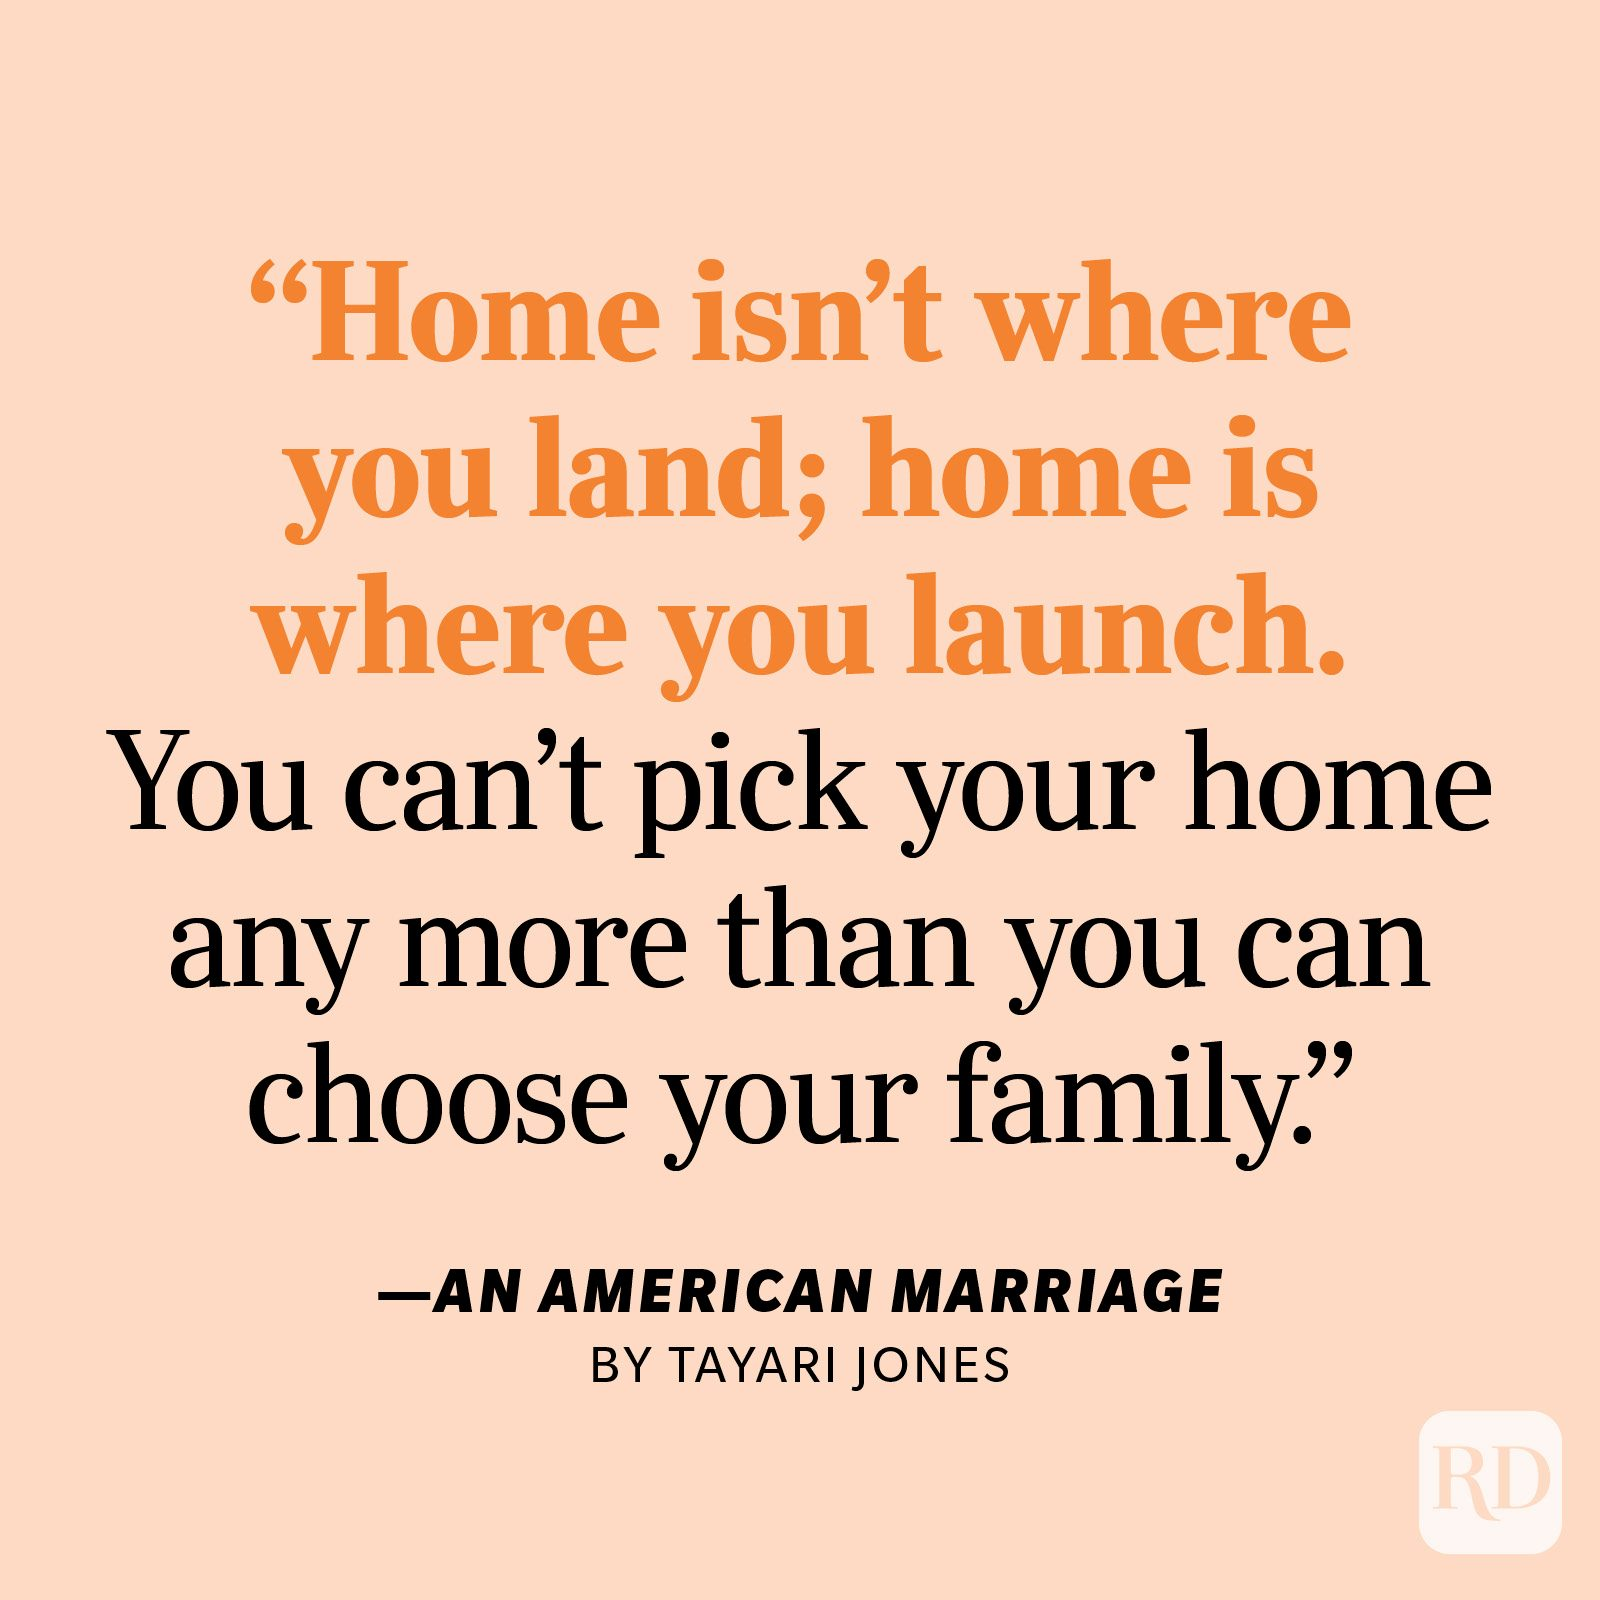 """An American Marriage by Tayari Jones """"Home isn't where you land; home is where you launch. You can't pick your home any more than you can choose your family. In poker, you get five cards. Three of them you can swap out, but two are yours to keep: family and native land."""""""